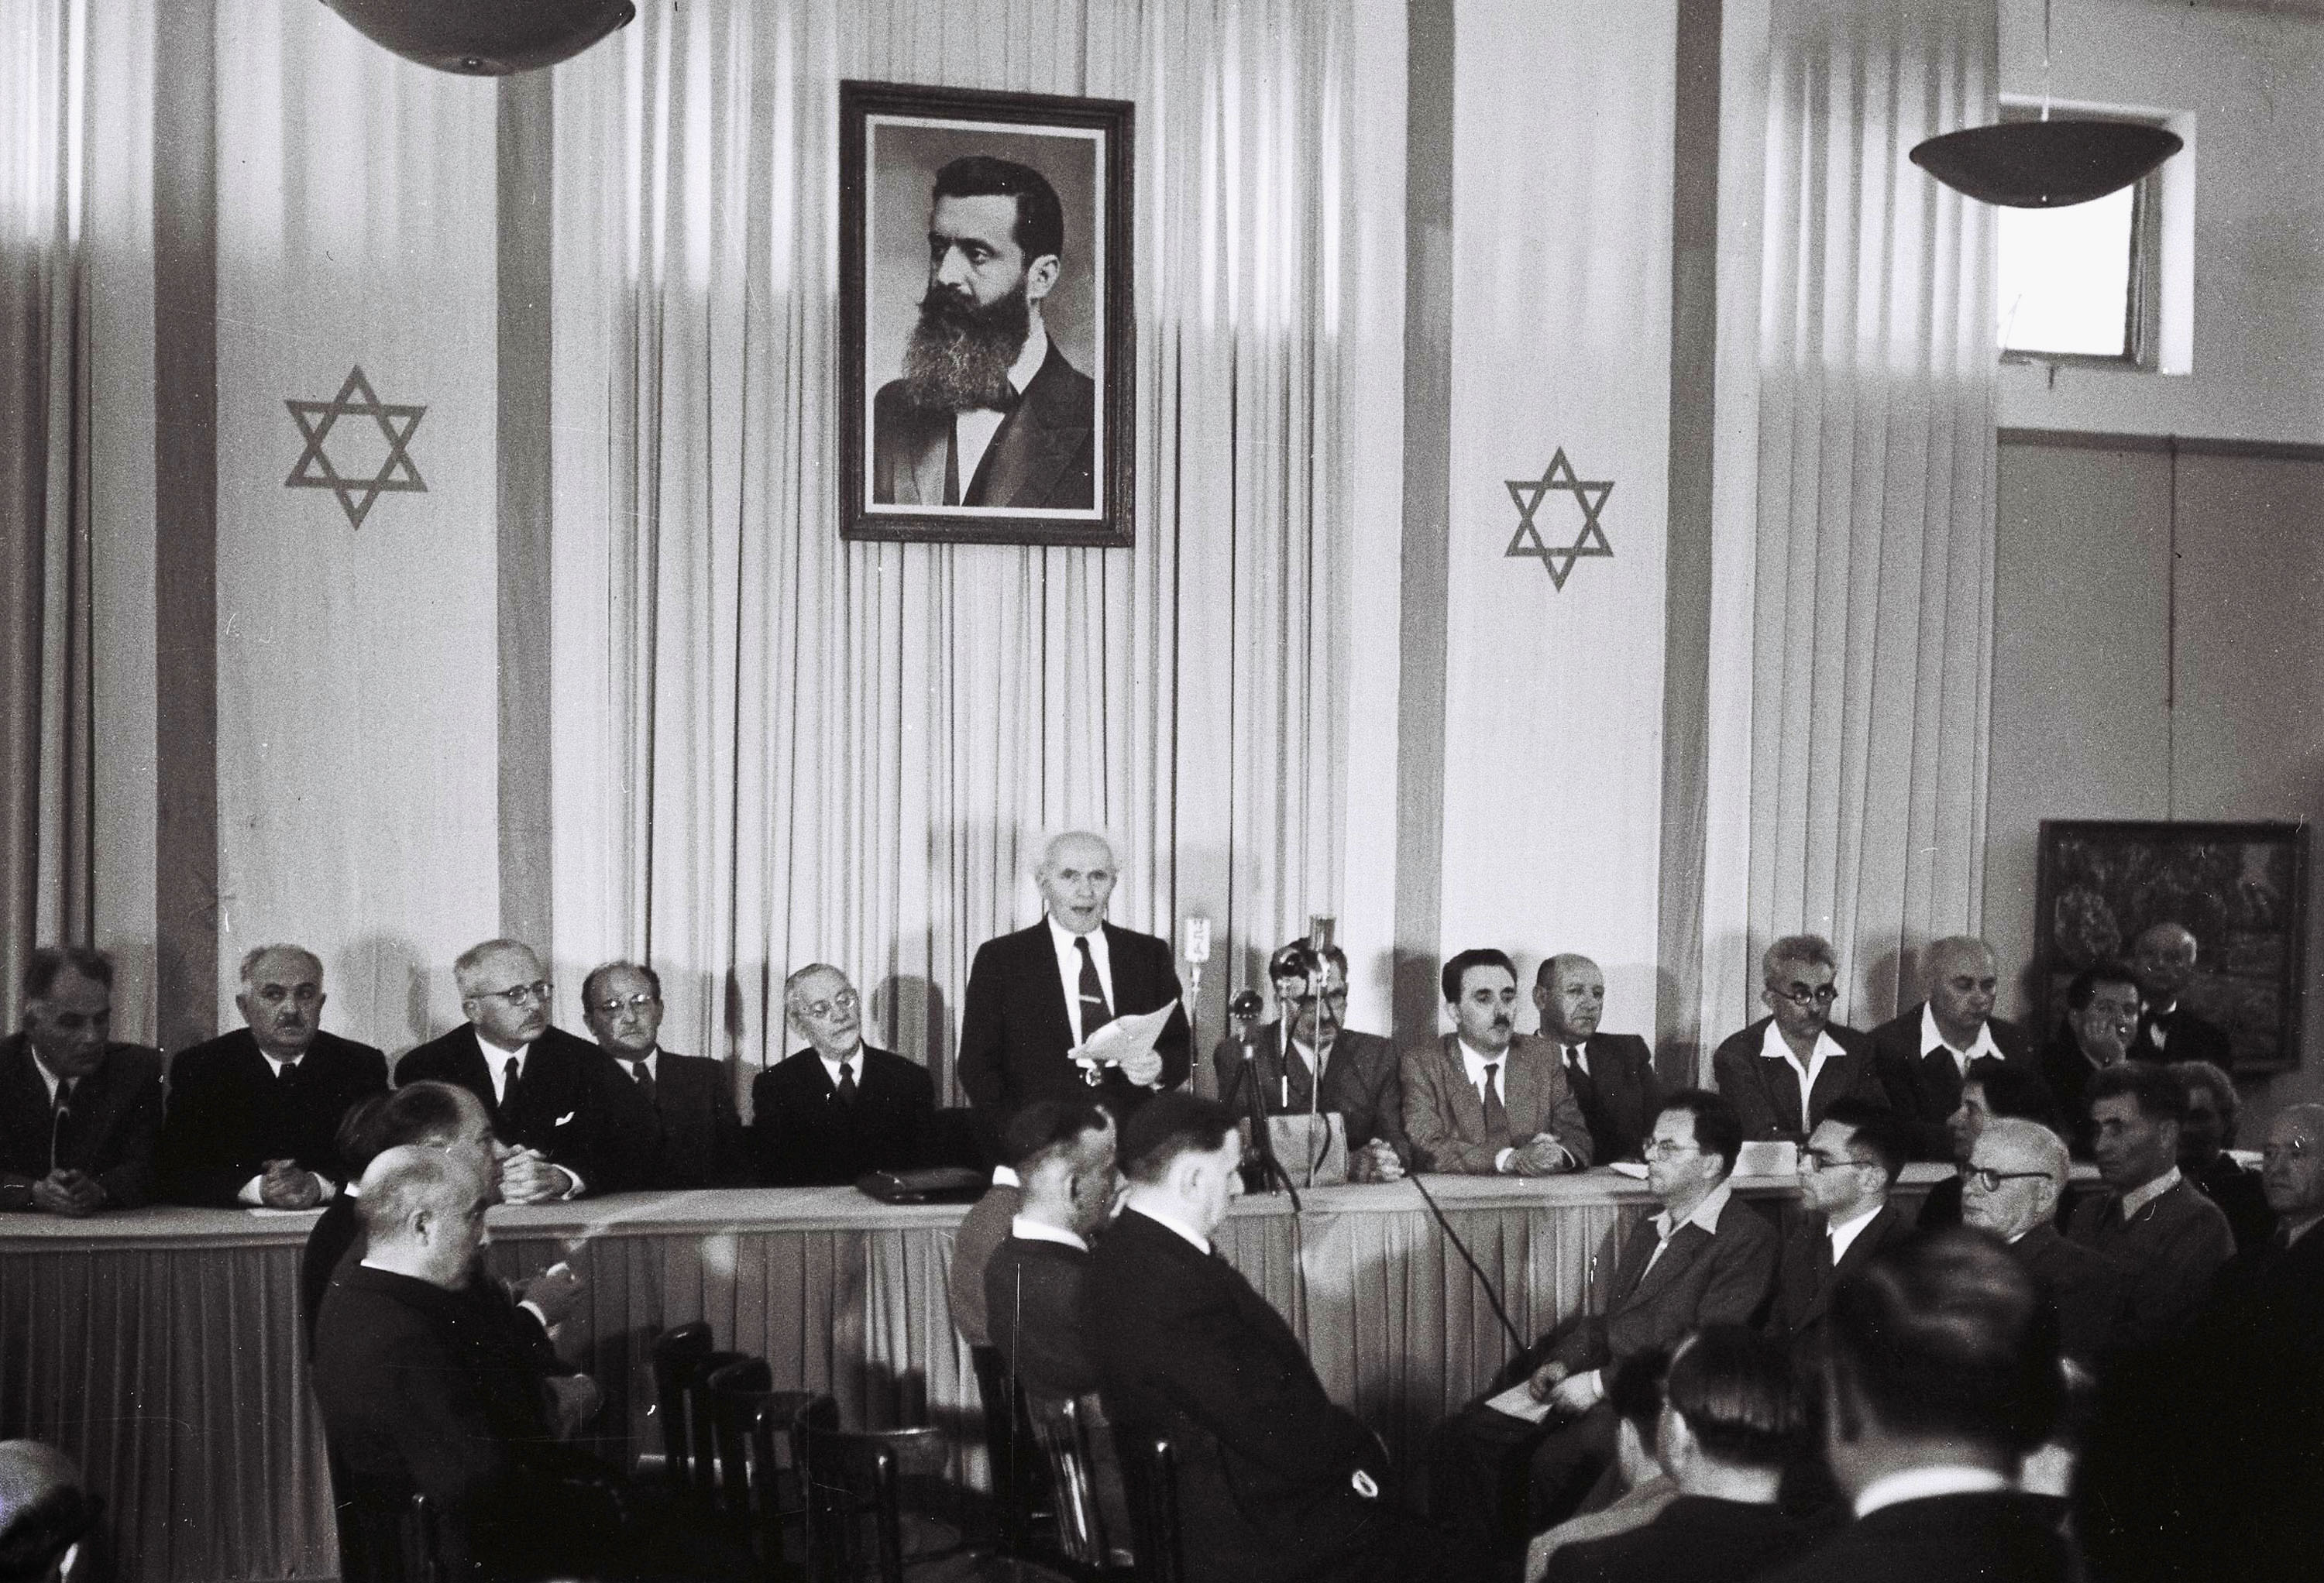 https://i1.wp.com/upload.wikimedia.org/wikipedia/commons/3/36/Declaration_of_State_of_Israel_1948.jpg